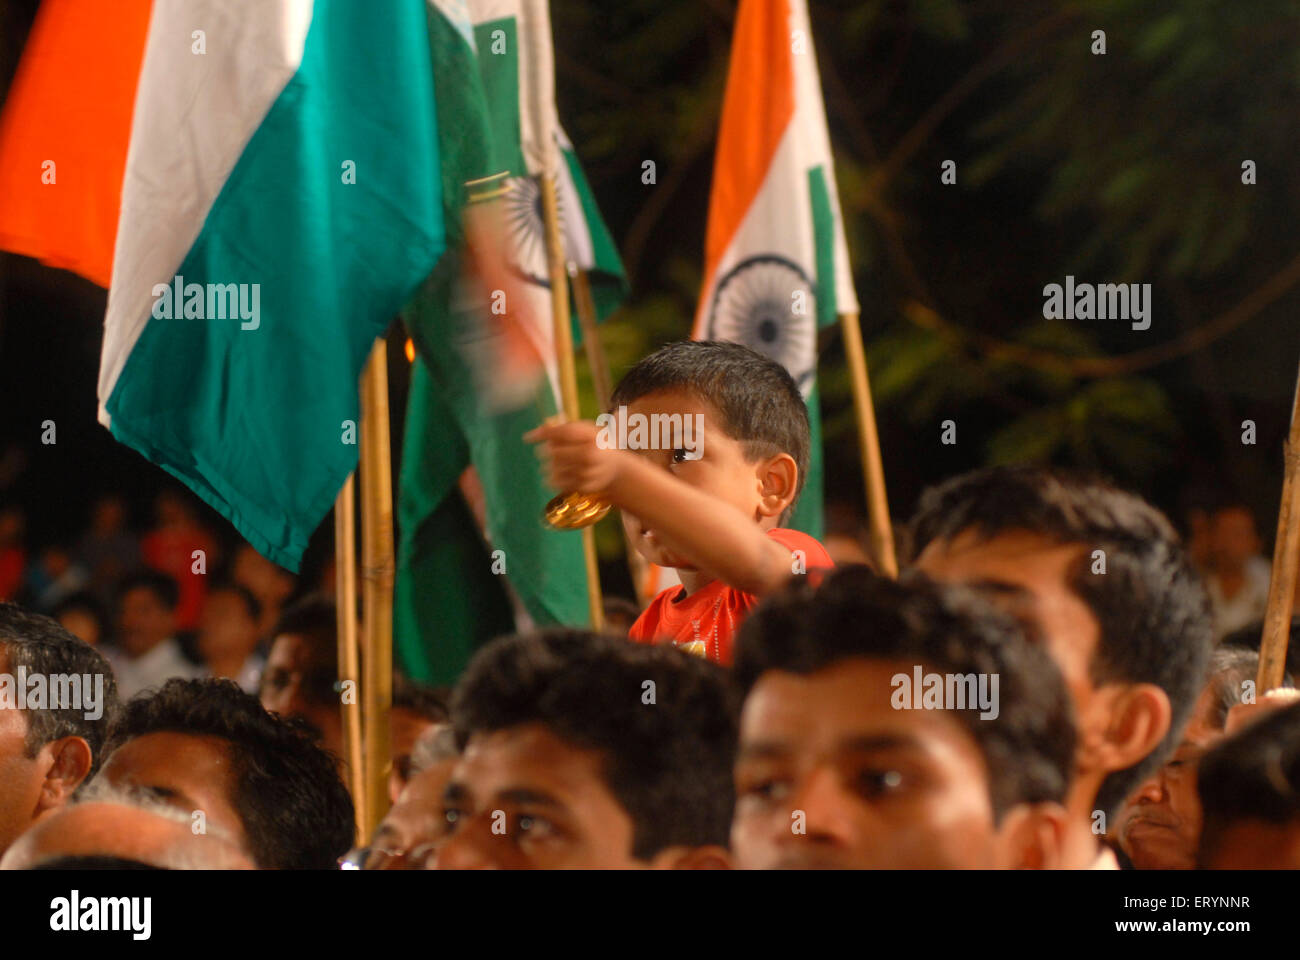 Residents celebrate Independence Day with tri color Indian flag at midnight on 15th August at Sambaji Maidan ; Mulund - Stock Image